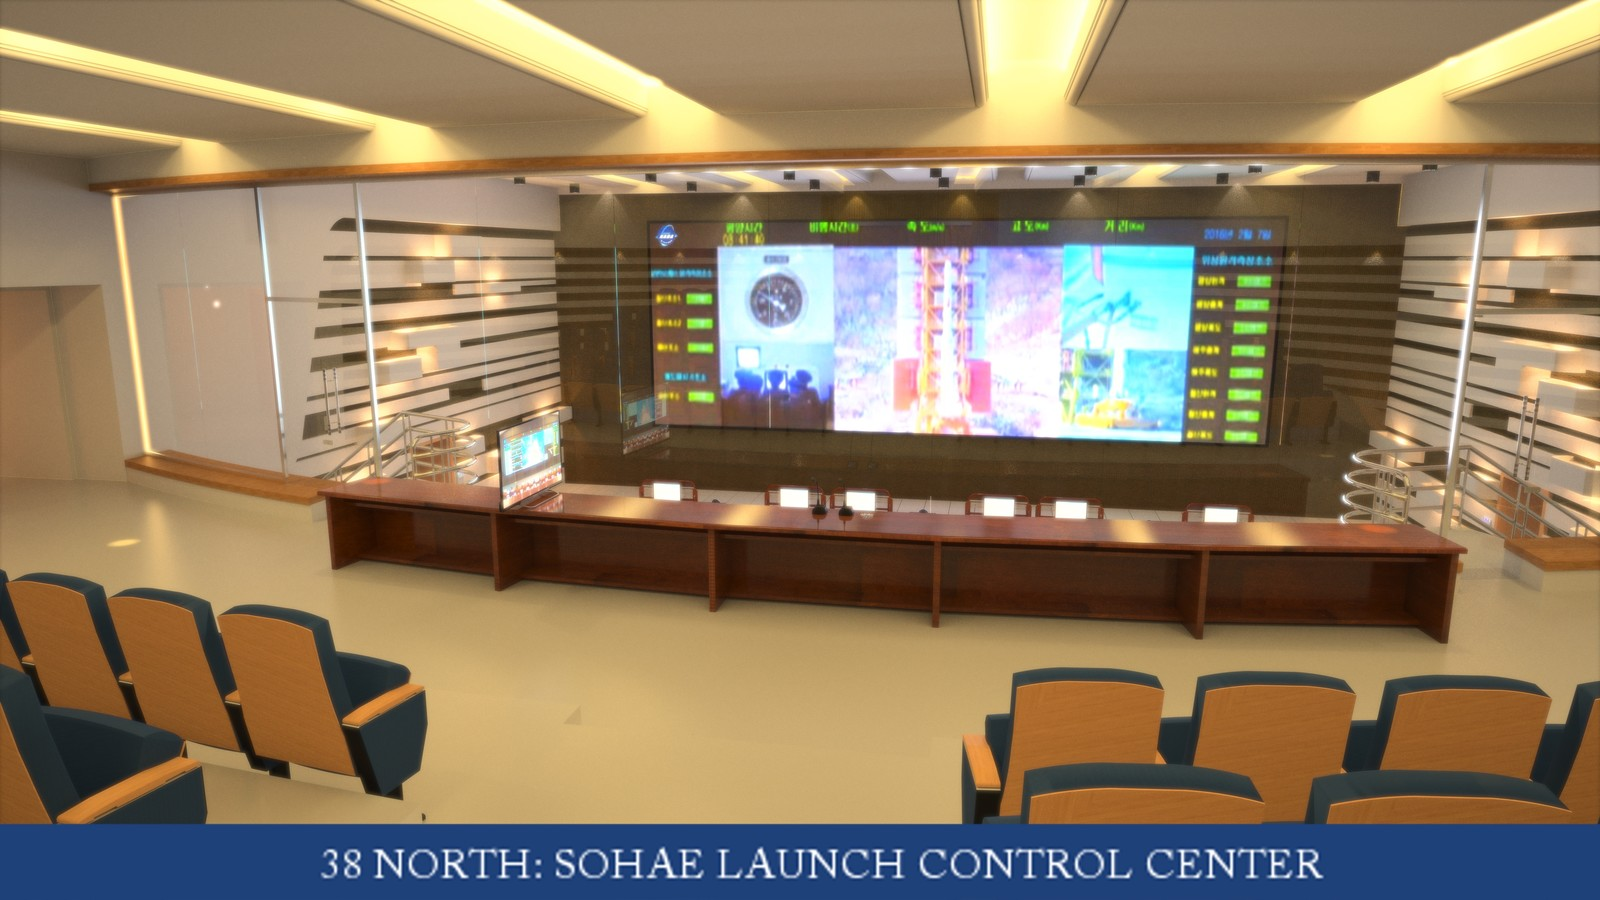 Sohae Satellite Launching Station's Launch for 38 North Control Room 04 Model by Nathan J Hunt/Edited & Rendered by Duane Kemp Project for 38North  Read the story here: http://www.kemppro.com/KP-3D-Sohae-Launch-Control-Room-WIRED-Magazine.html